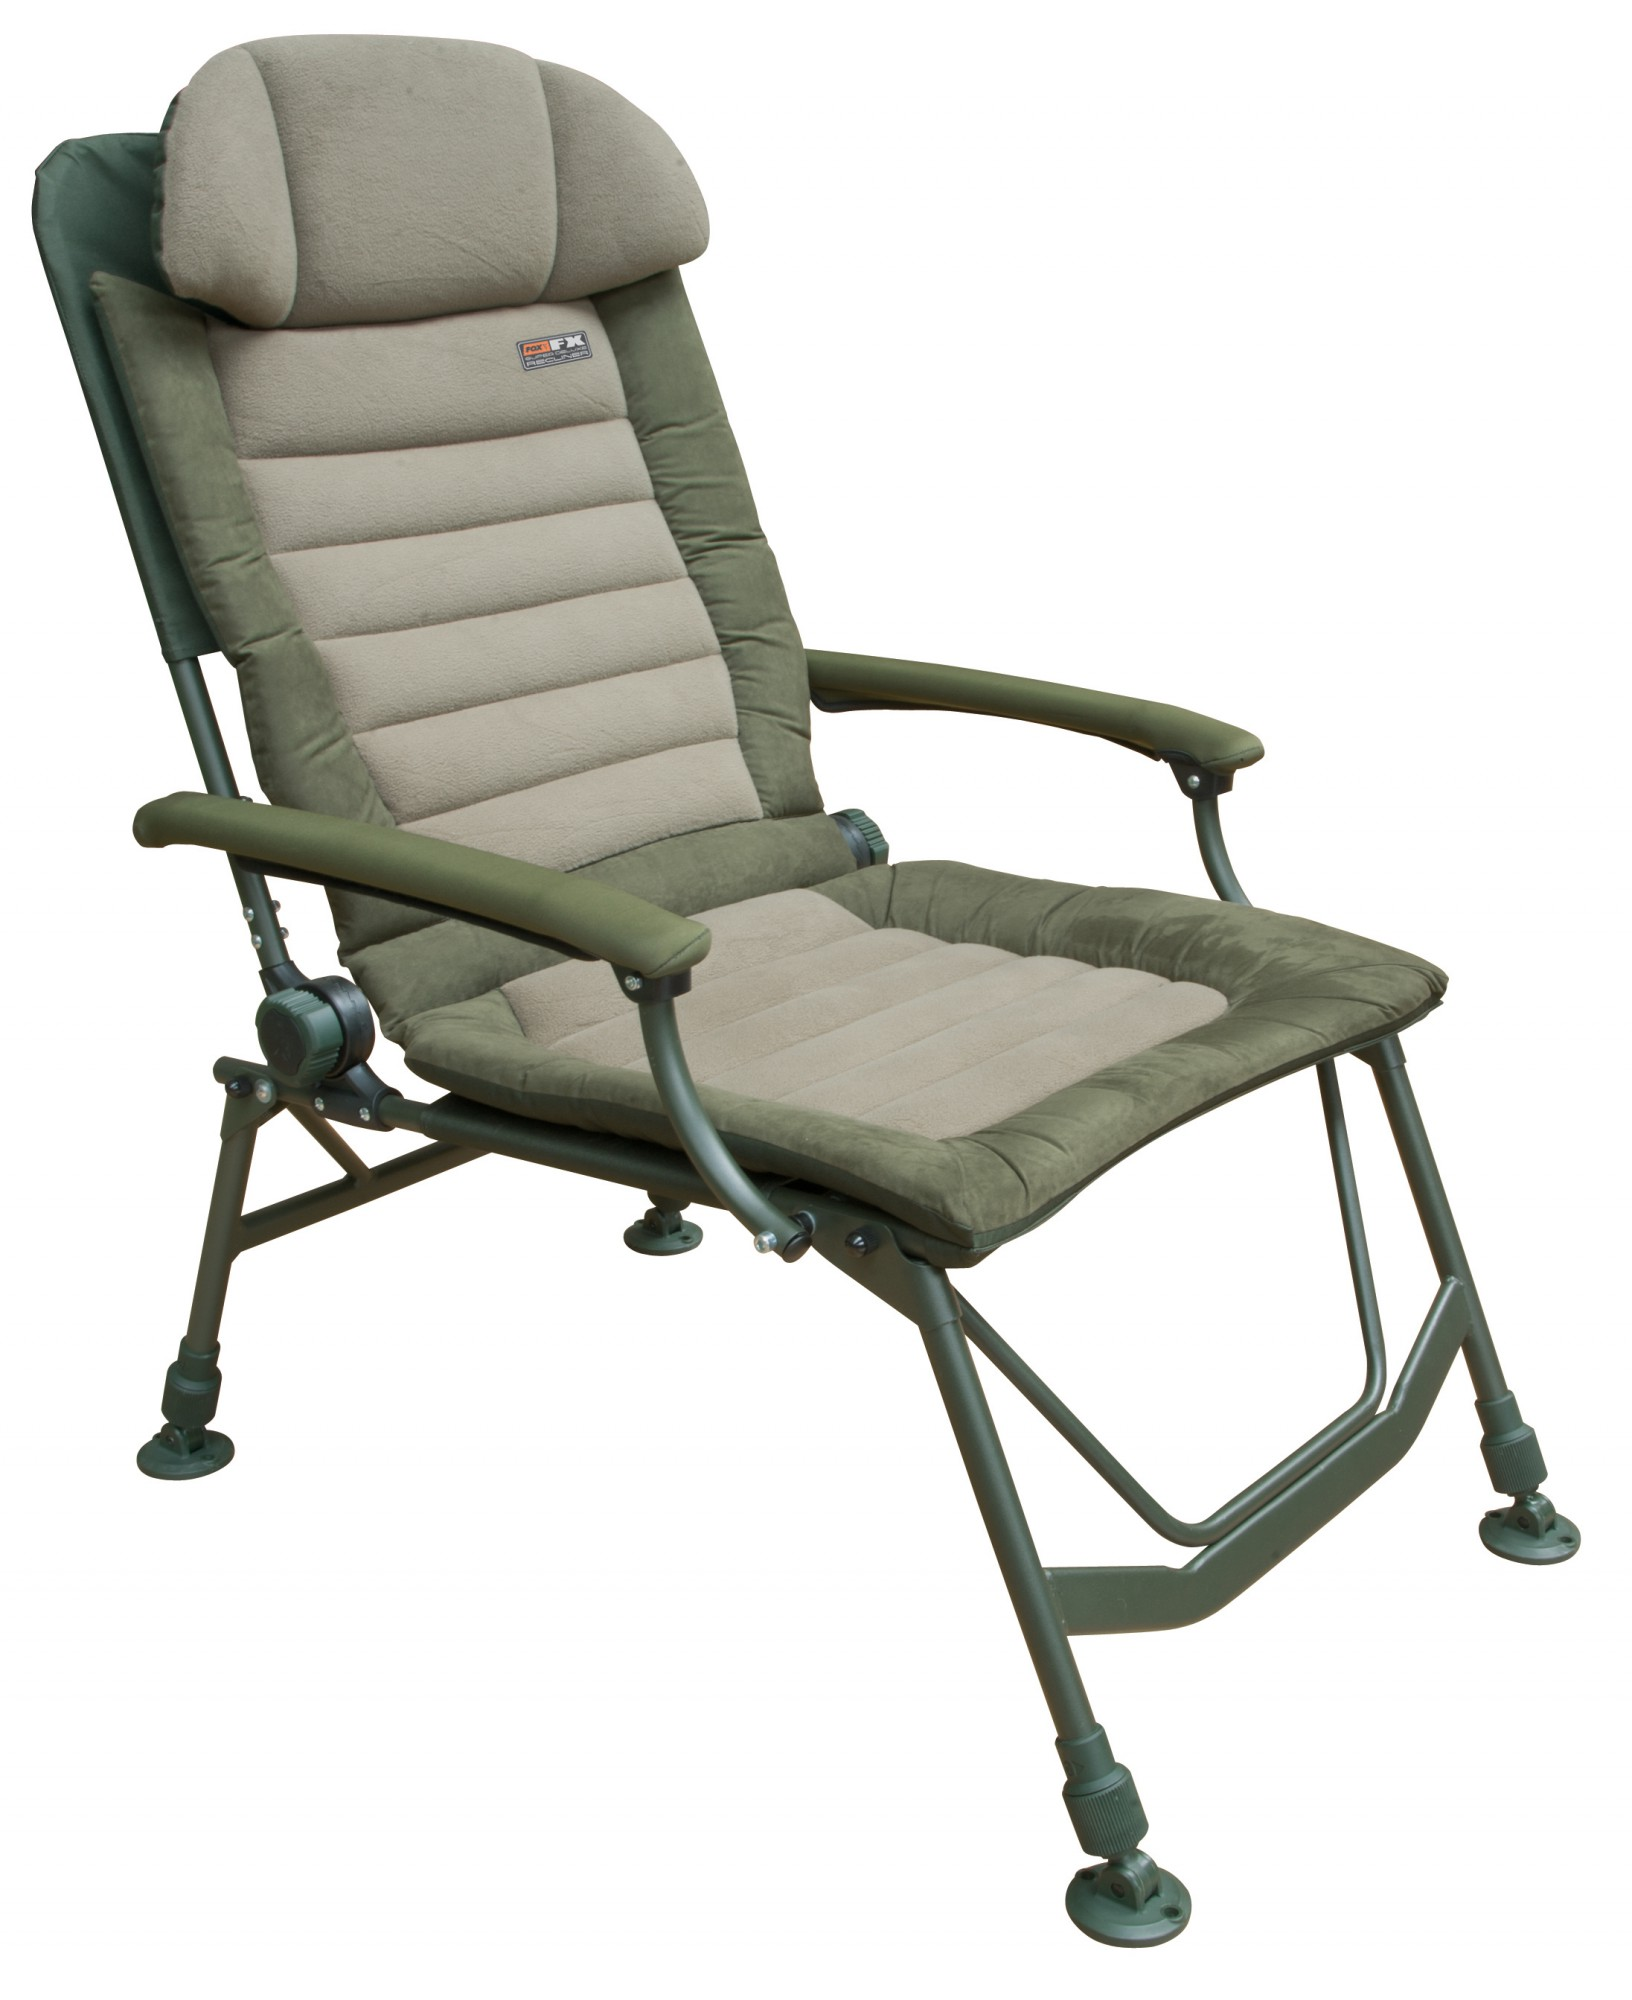 korda fishing chair skyline furniture fox fx super deluxe recliner stuhl angelstuhl